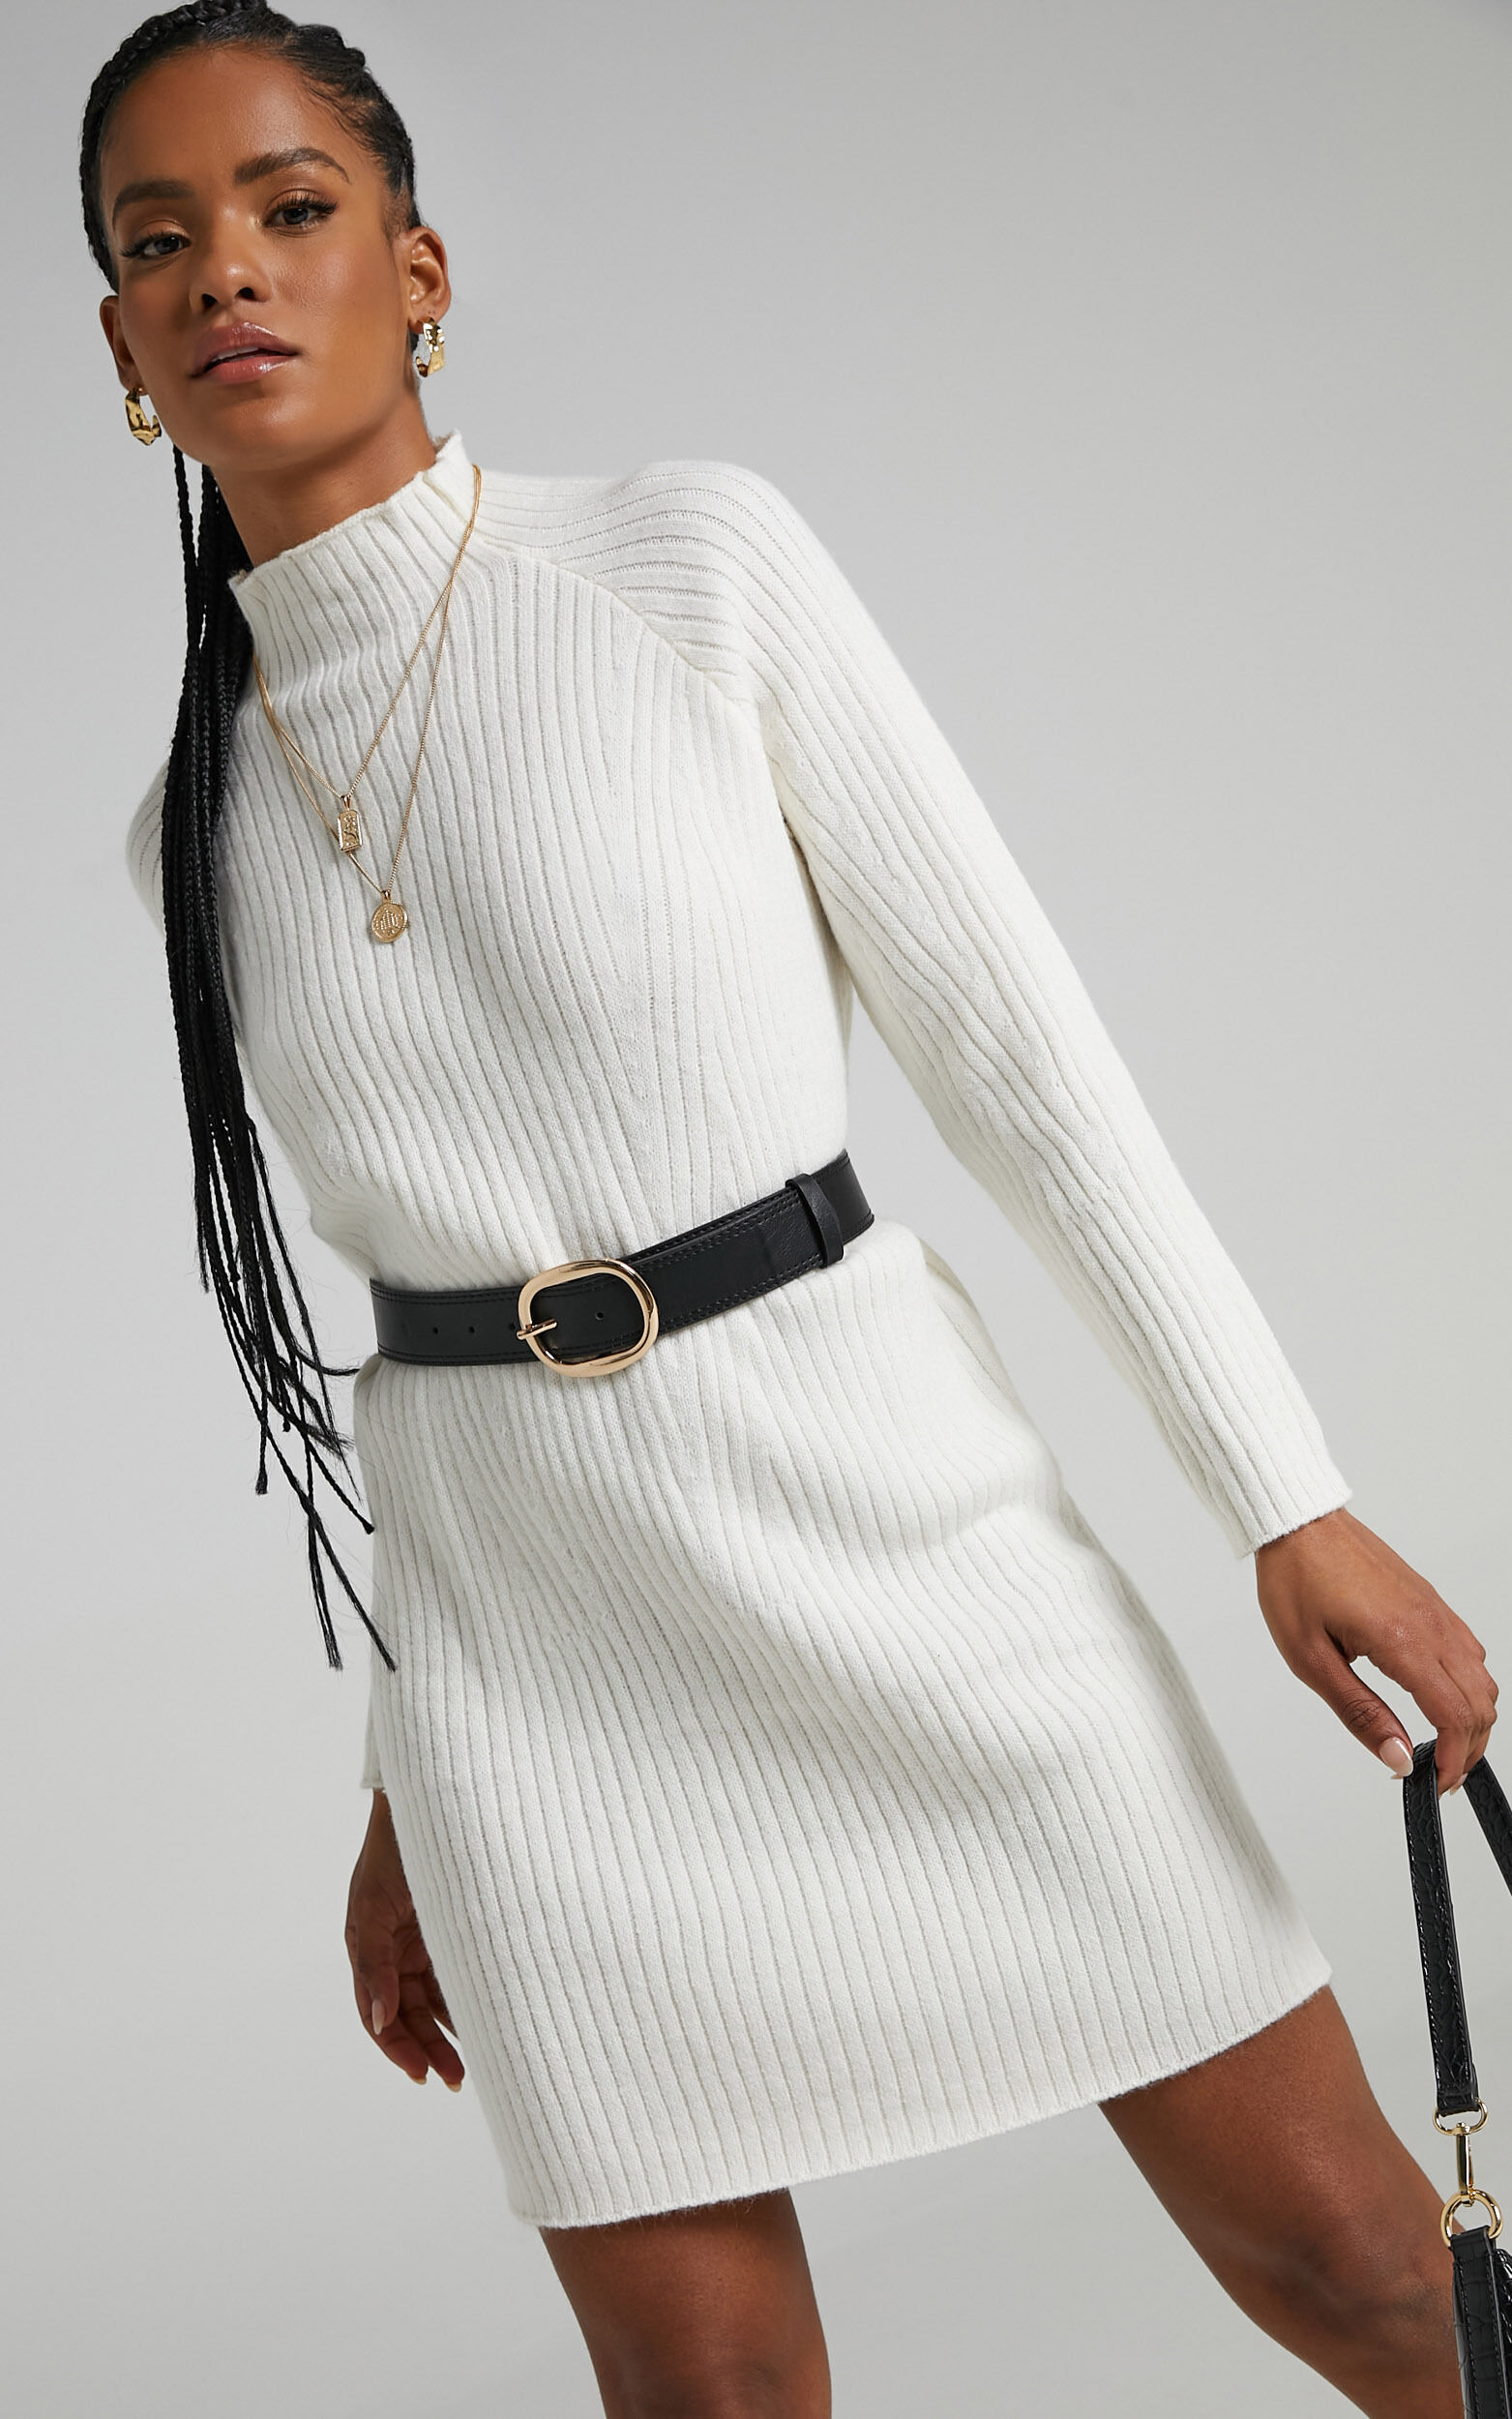 Shantelle Knit Dress in Cream - L/XL, CRE1, super-hi-res image number null